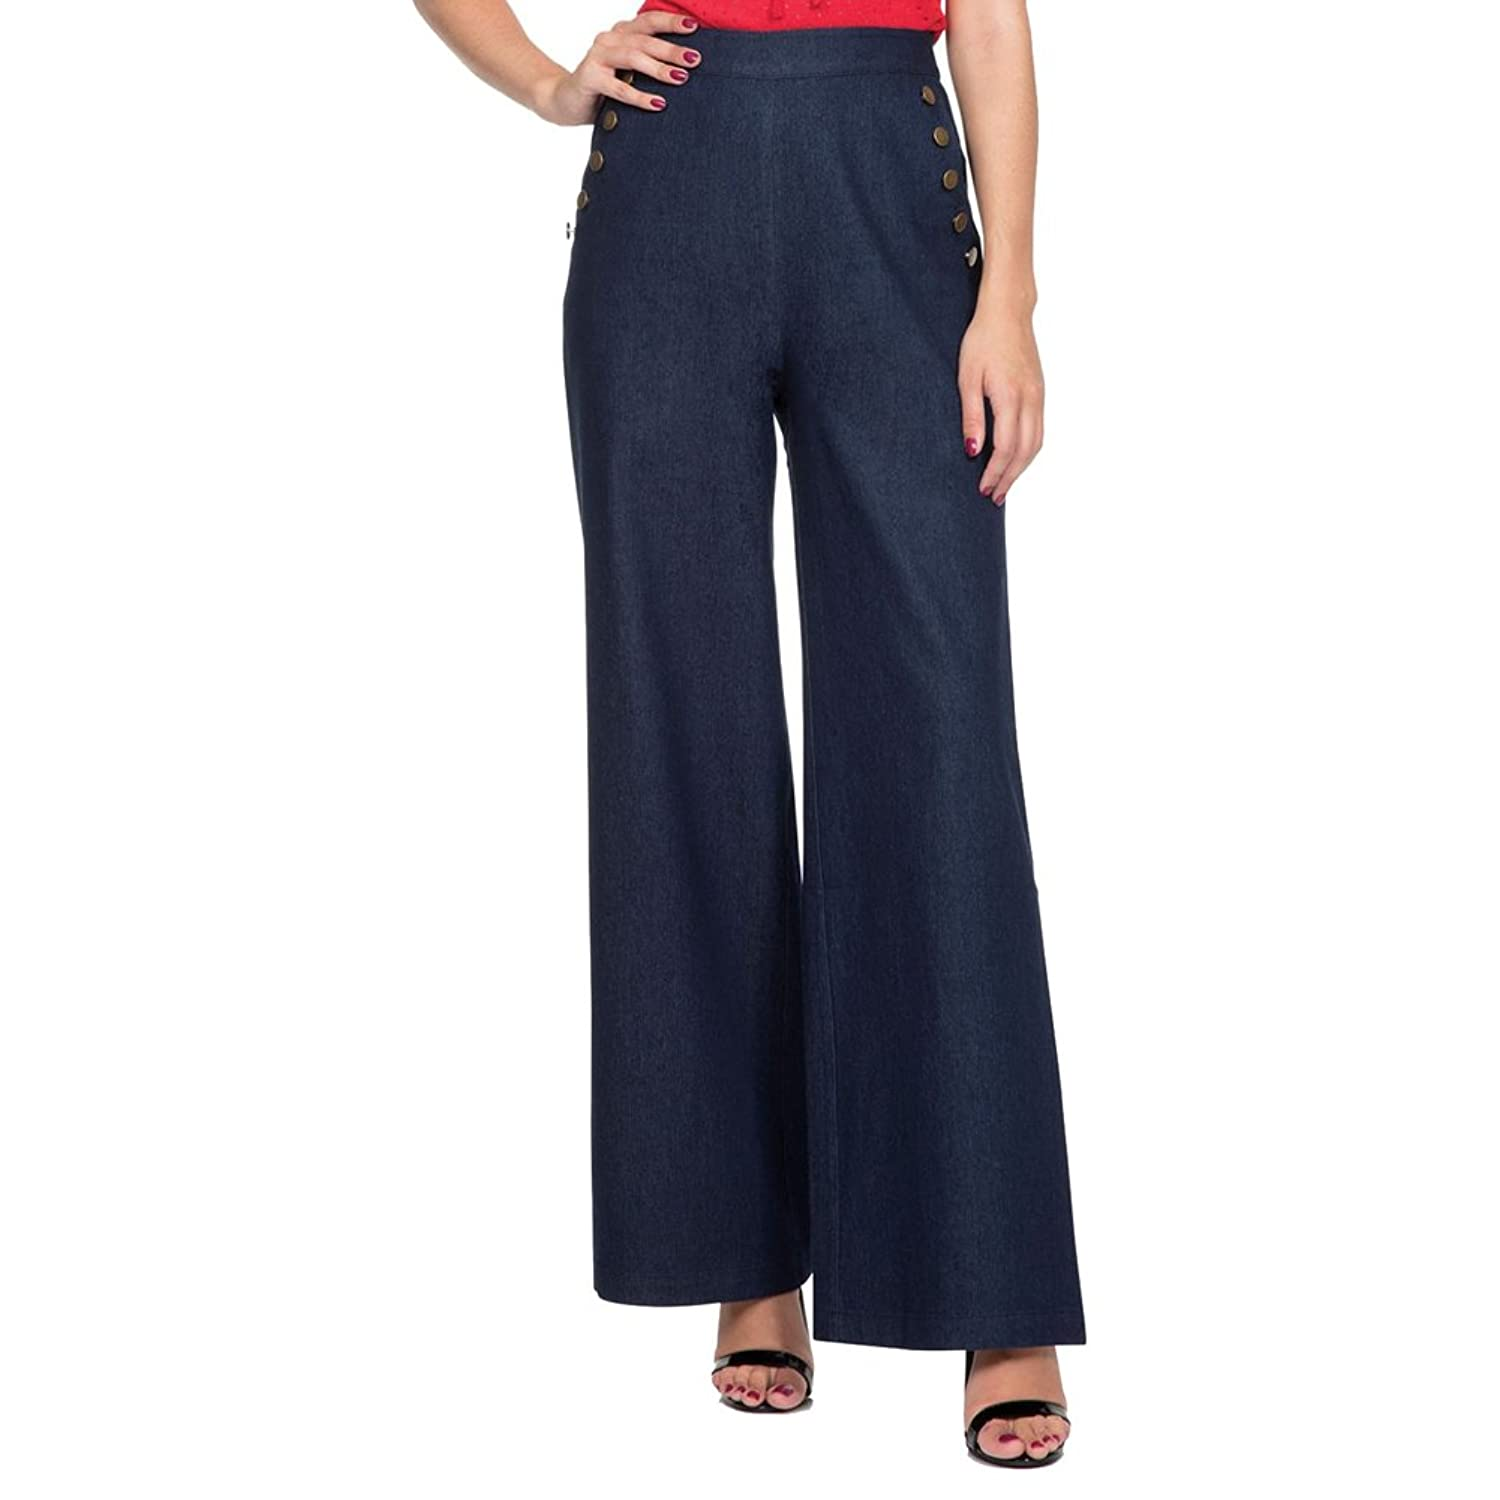 1940s Swing Pants & Sailor Trousers- Wide Leg, High Waist Womens Voodoo Vixen SAMANTHA Nautical Denim Trousers Blue $52.99 AT vintagedancer.com